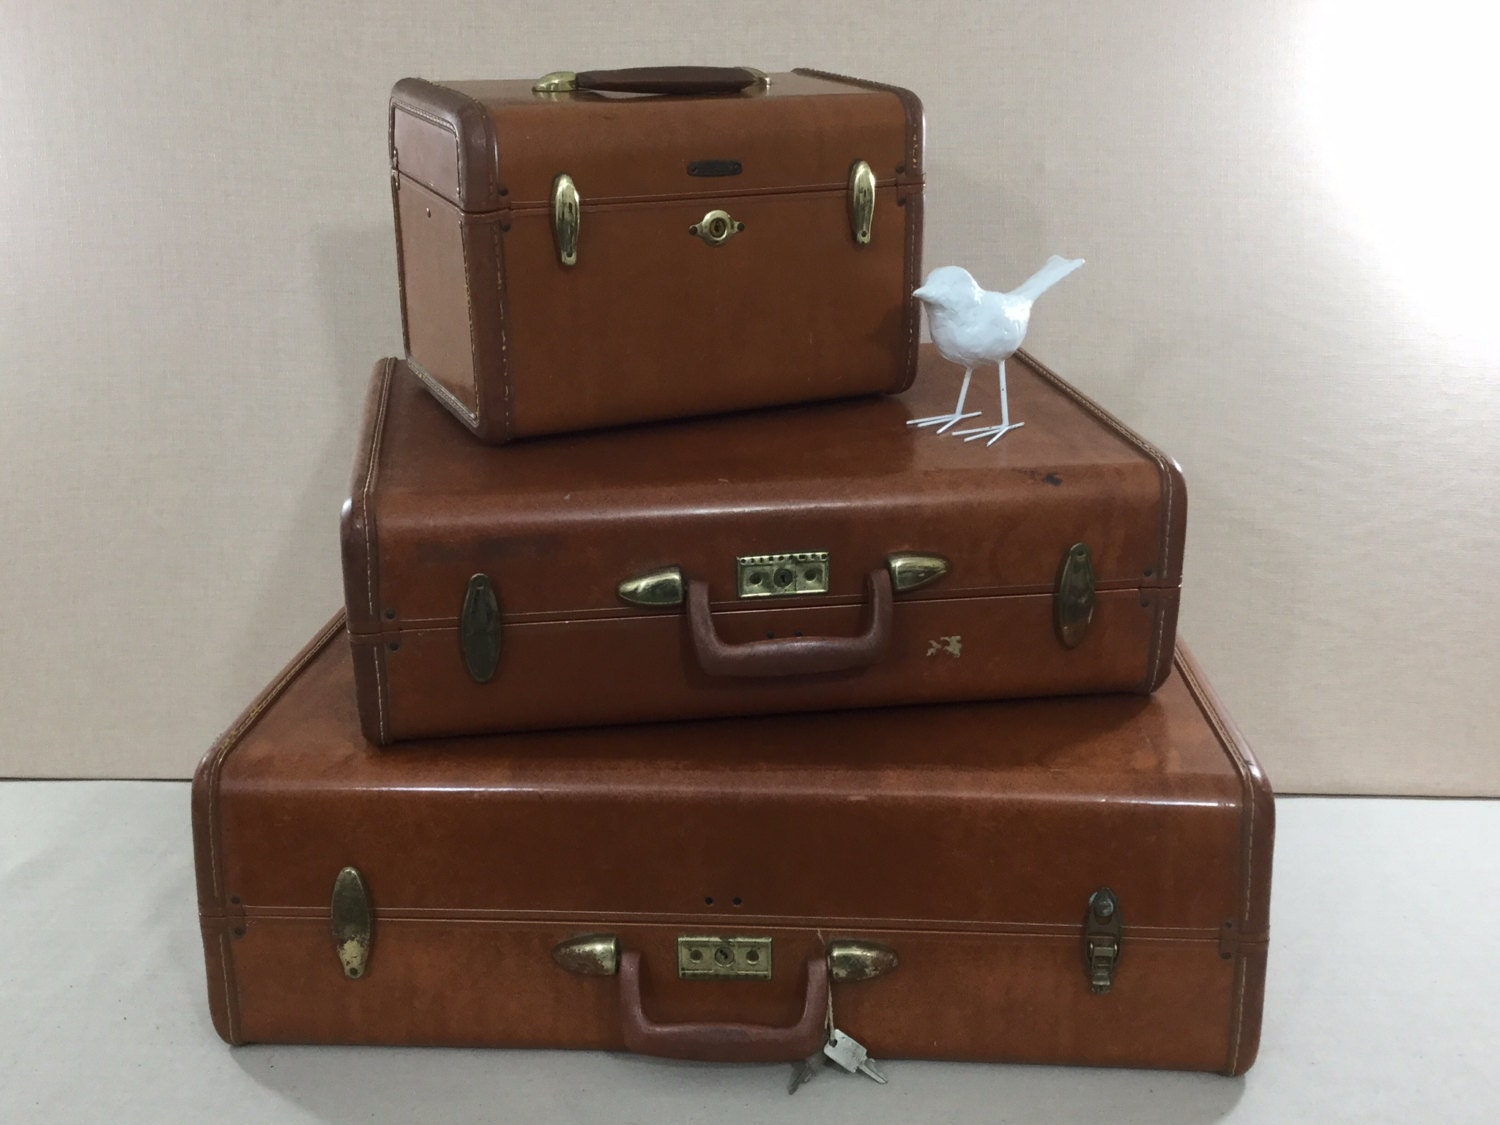 Vintage suitcase samsonite luggage set retro hard sided - Vintage suitcase ...